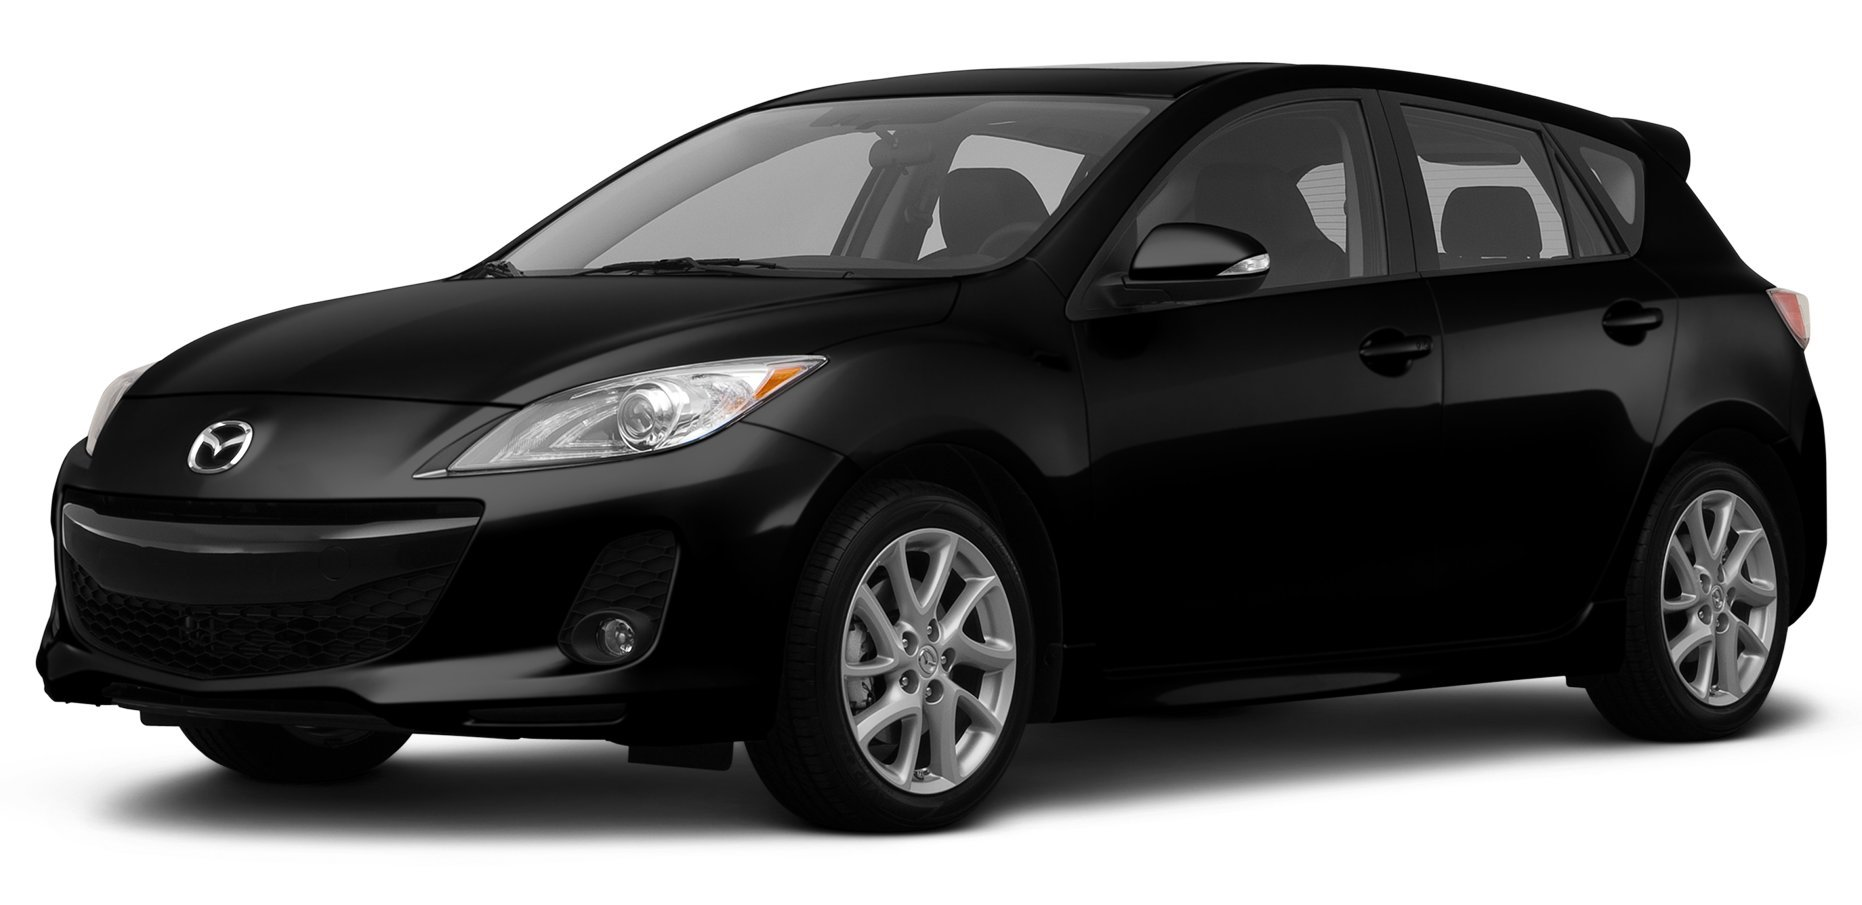 ... 2012 Mazda 3 s Grand Touring, 5-Door Hatchback Automatic Transmission